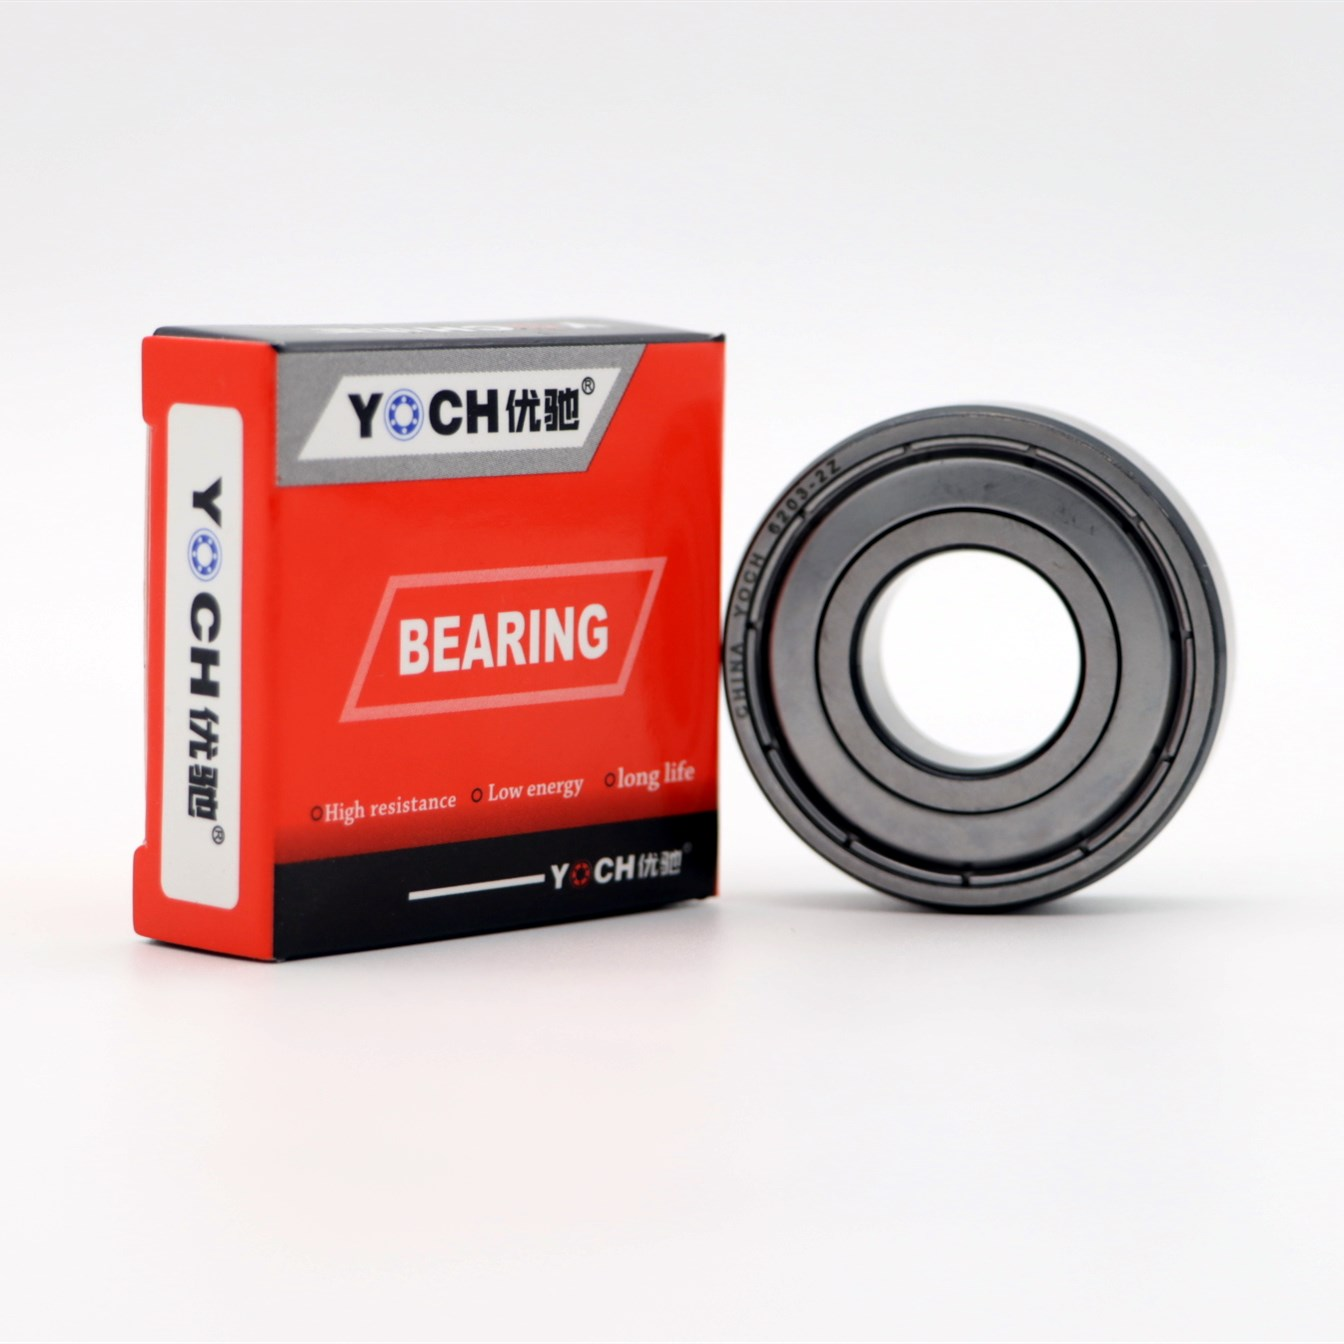 Manufacturer/Distributor YOCH bearing High Precision High Quality 3000 Series Tapered Roller Bearing 30240 Auto Parts Bearing